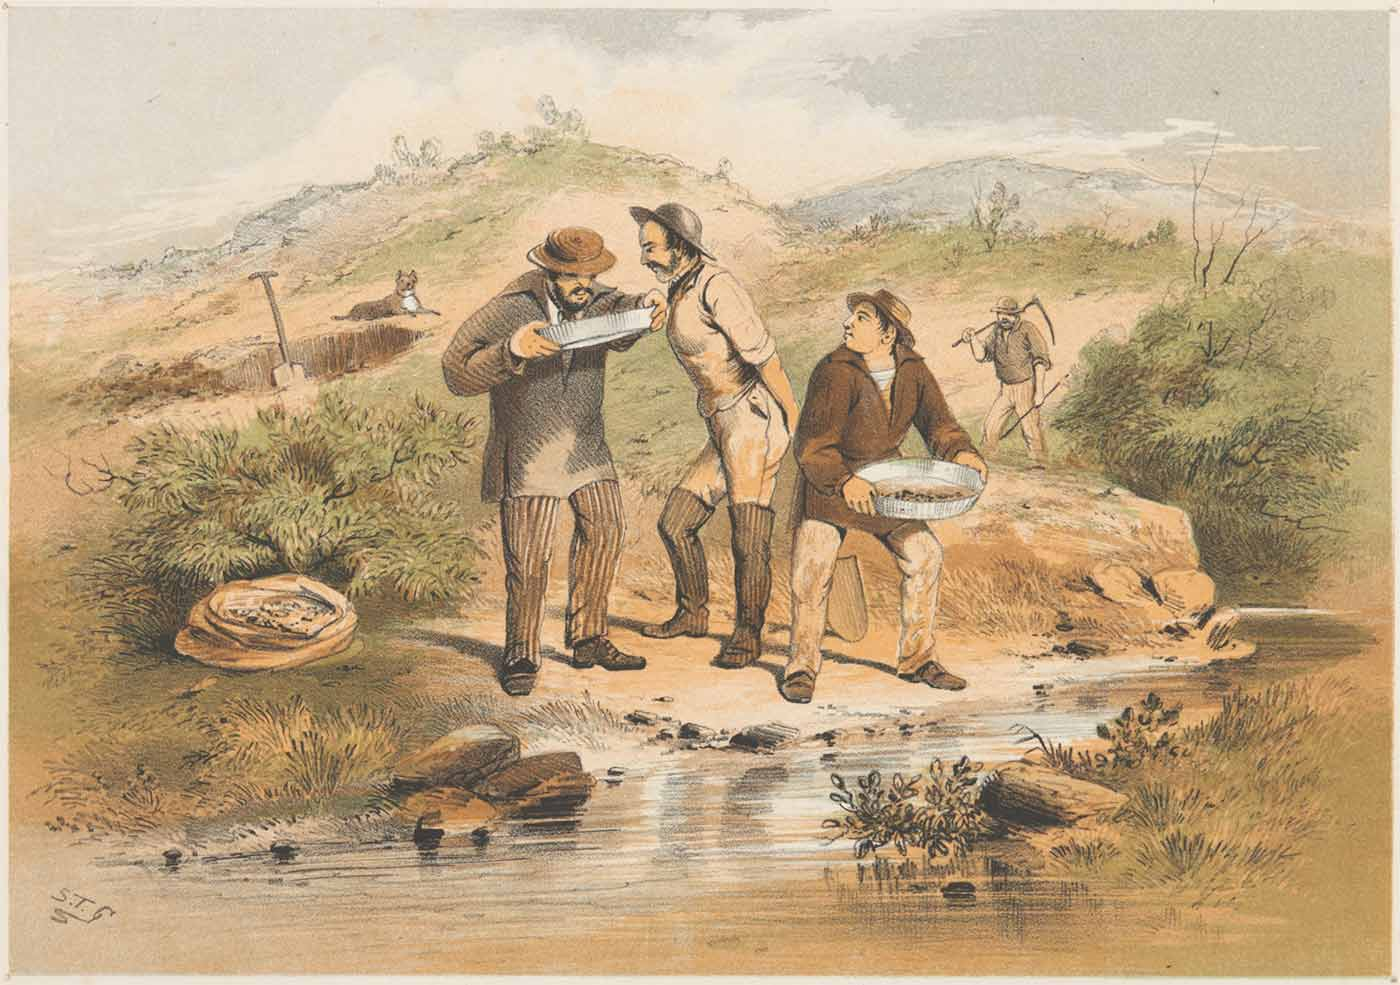 Watercolour painting of three men panning for gold by a small river. They are peering into one of the pans while another man with a scythe is seen in the distance walking in the direction of a spade resting in a hole. - click to view larger image